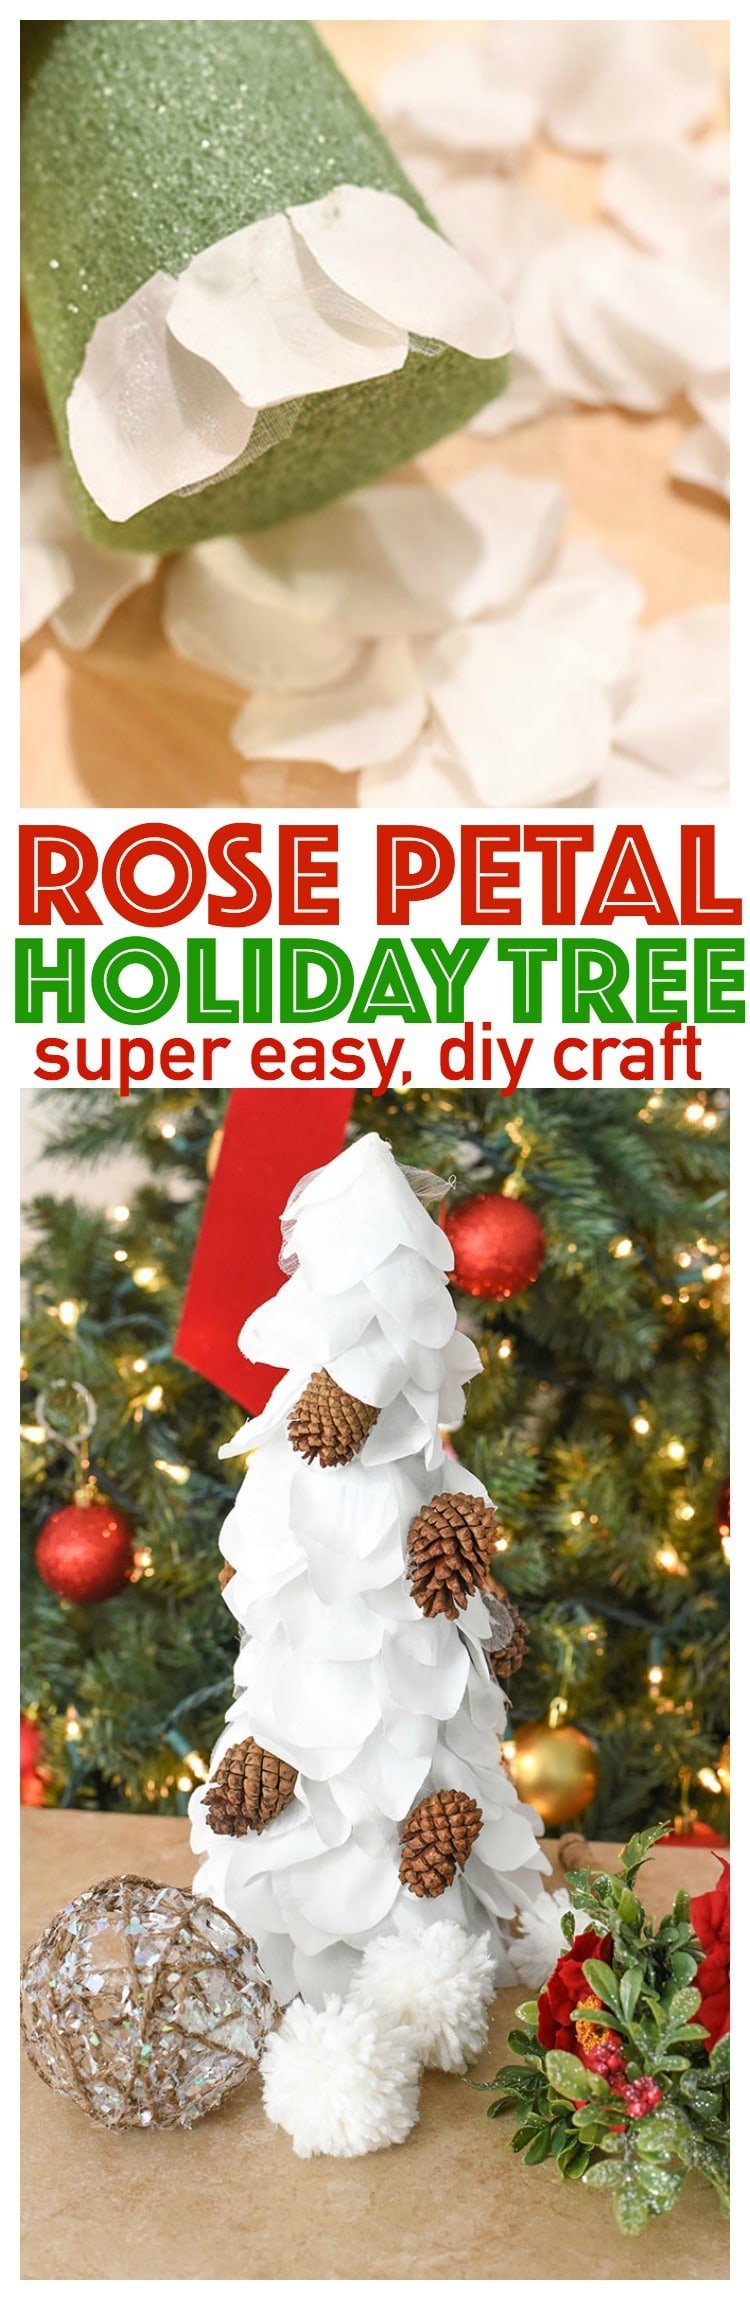 A simple craft DIY Rose Petal Holiday Tree with scented pine cones! Perfect as a table centerpiece or on the Christmas Mantle.